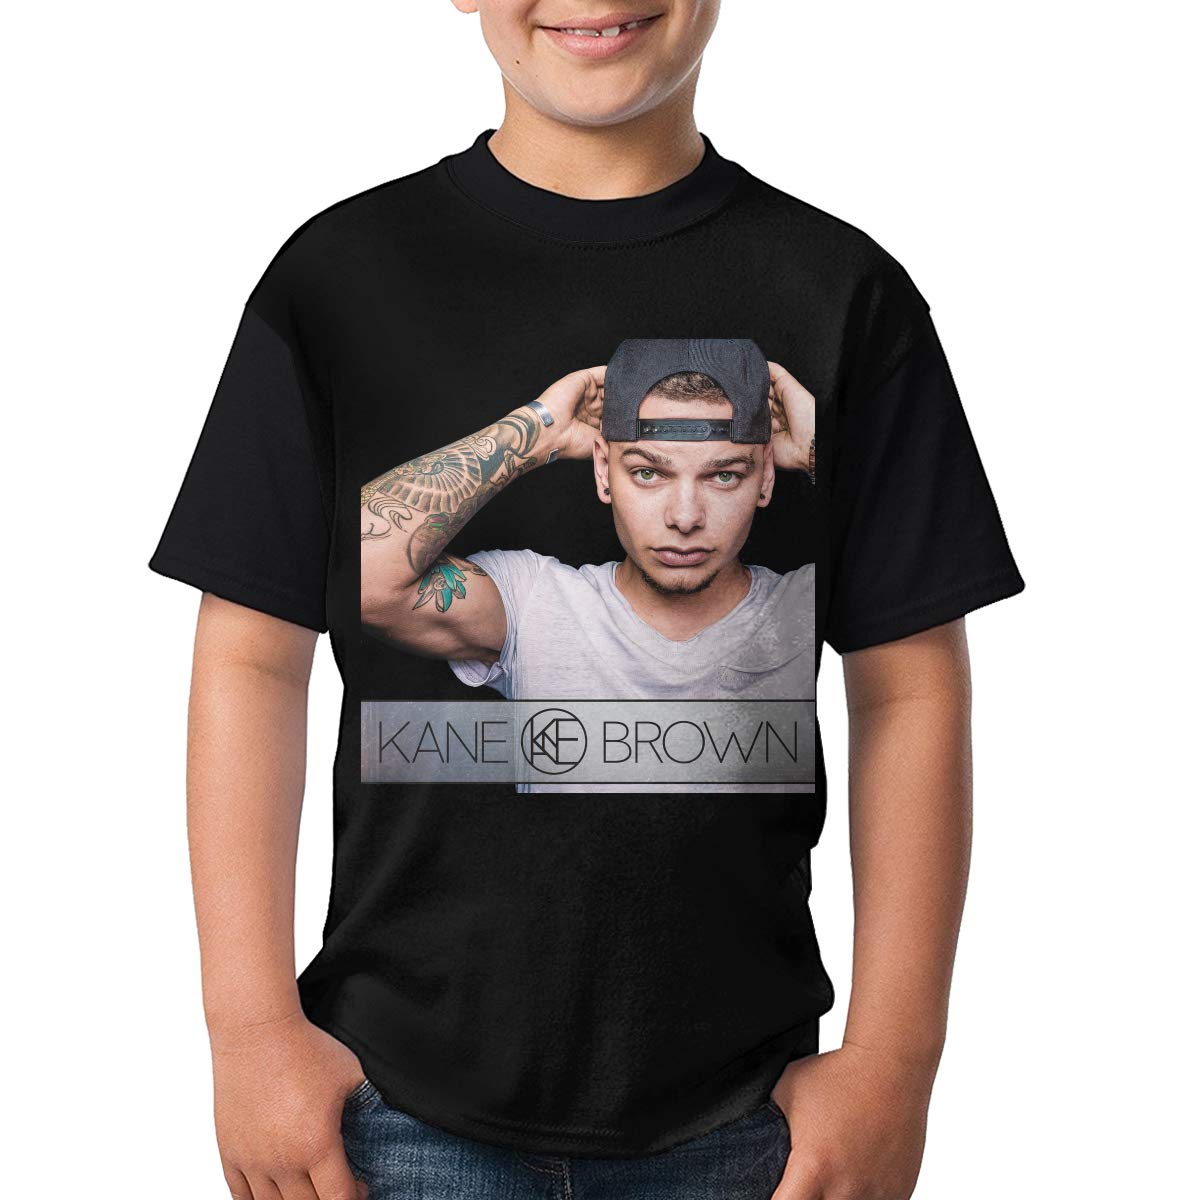 Kane Brown Short Sleeve T-Shirt Sport Casual Classic Jersey for Teens Youth Round Neck T-Shirts